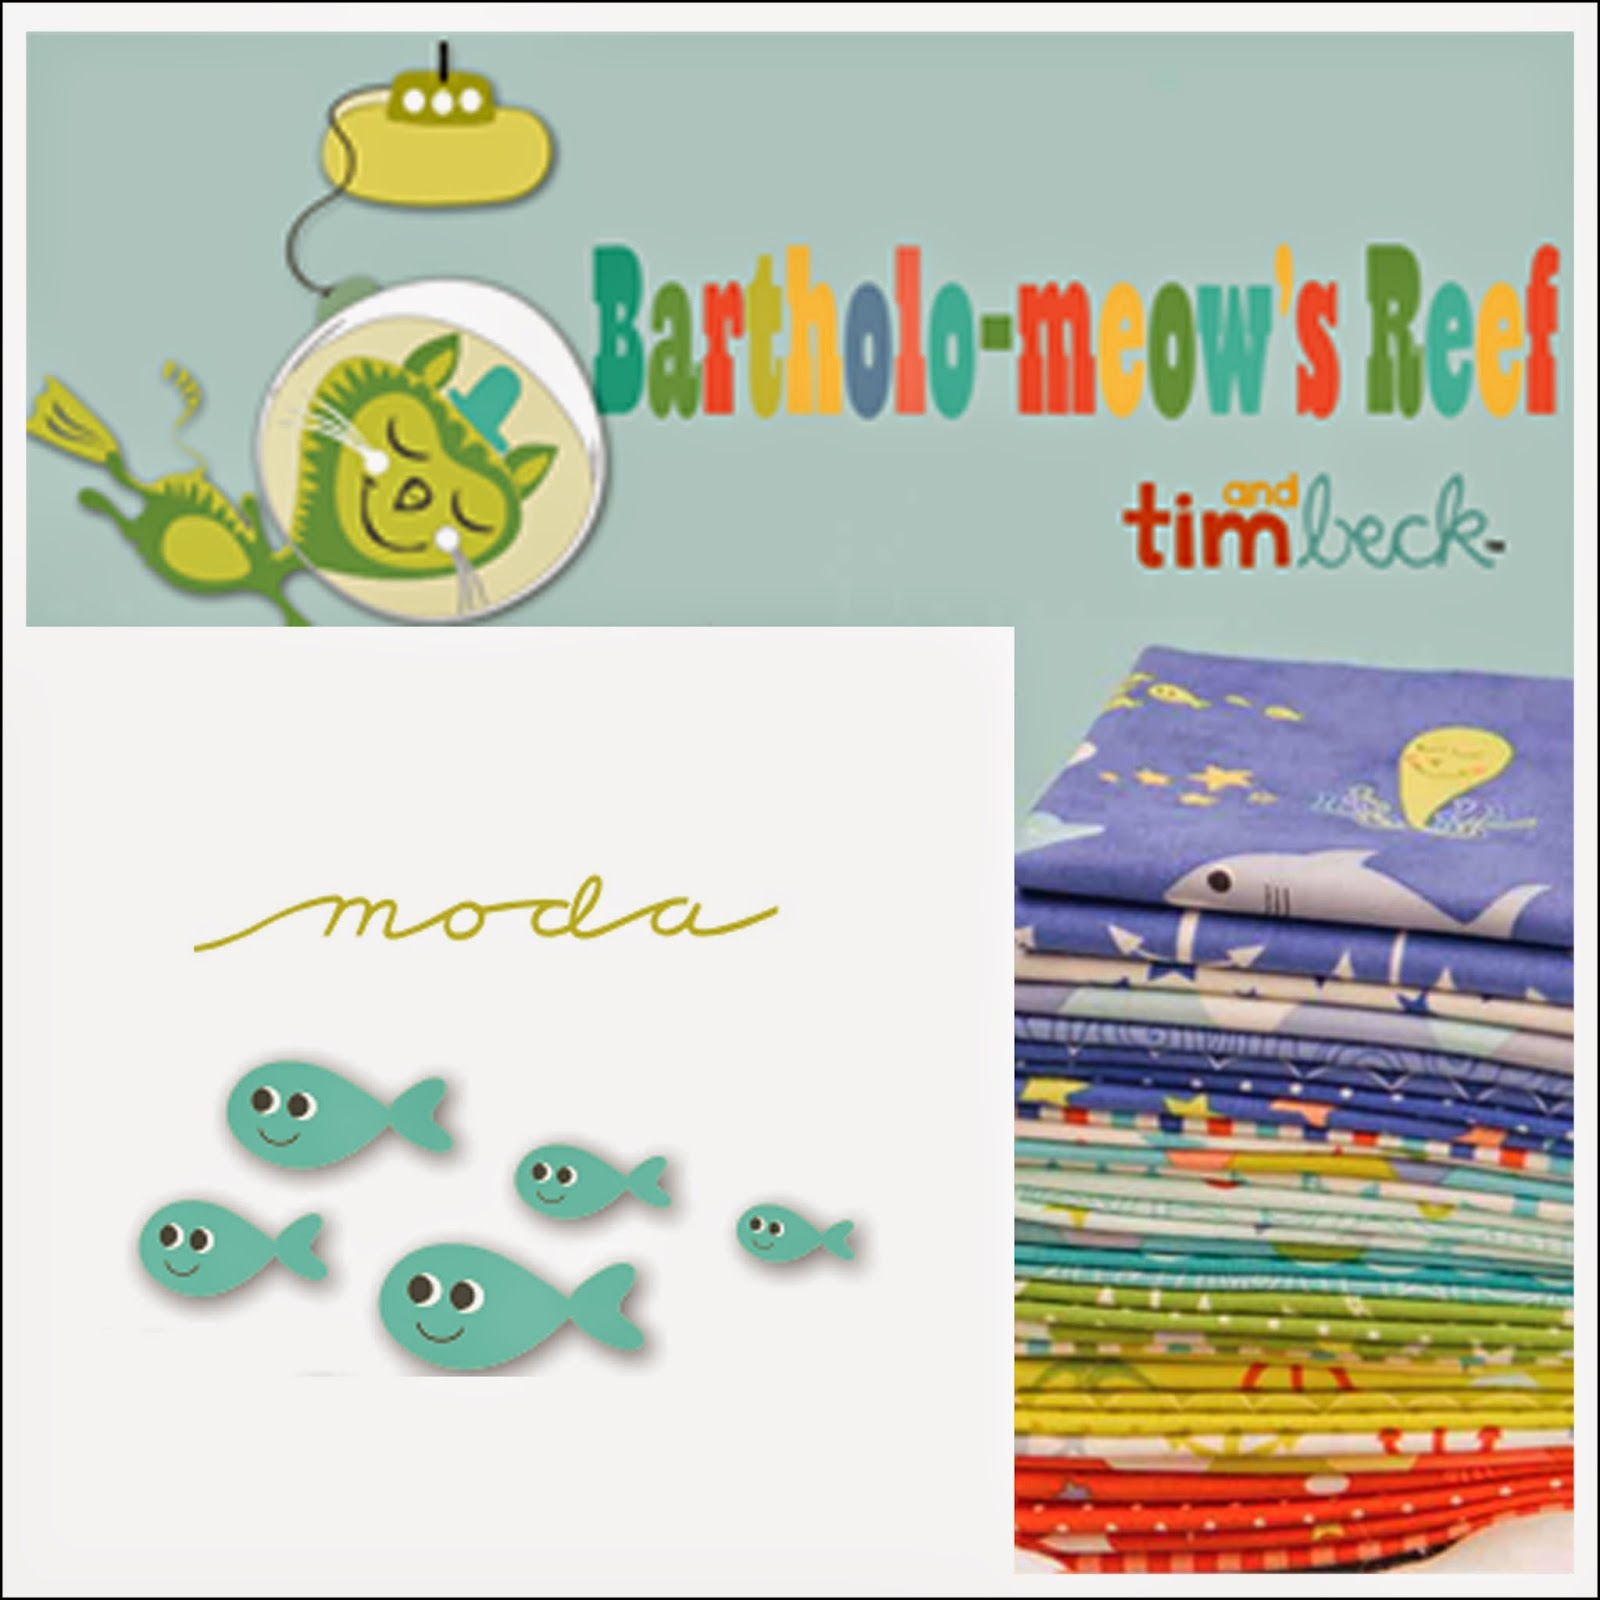 Moda BARTHOLO-MEOW'S REEF Quilt Fabric by Tim and Beck